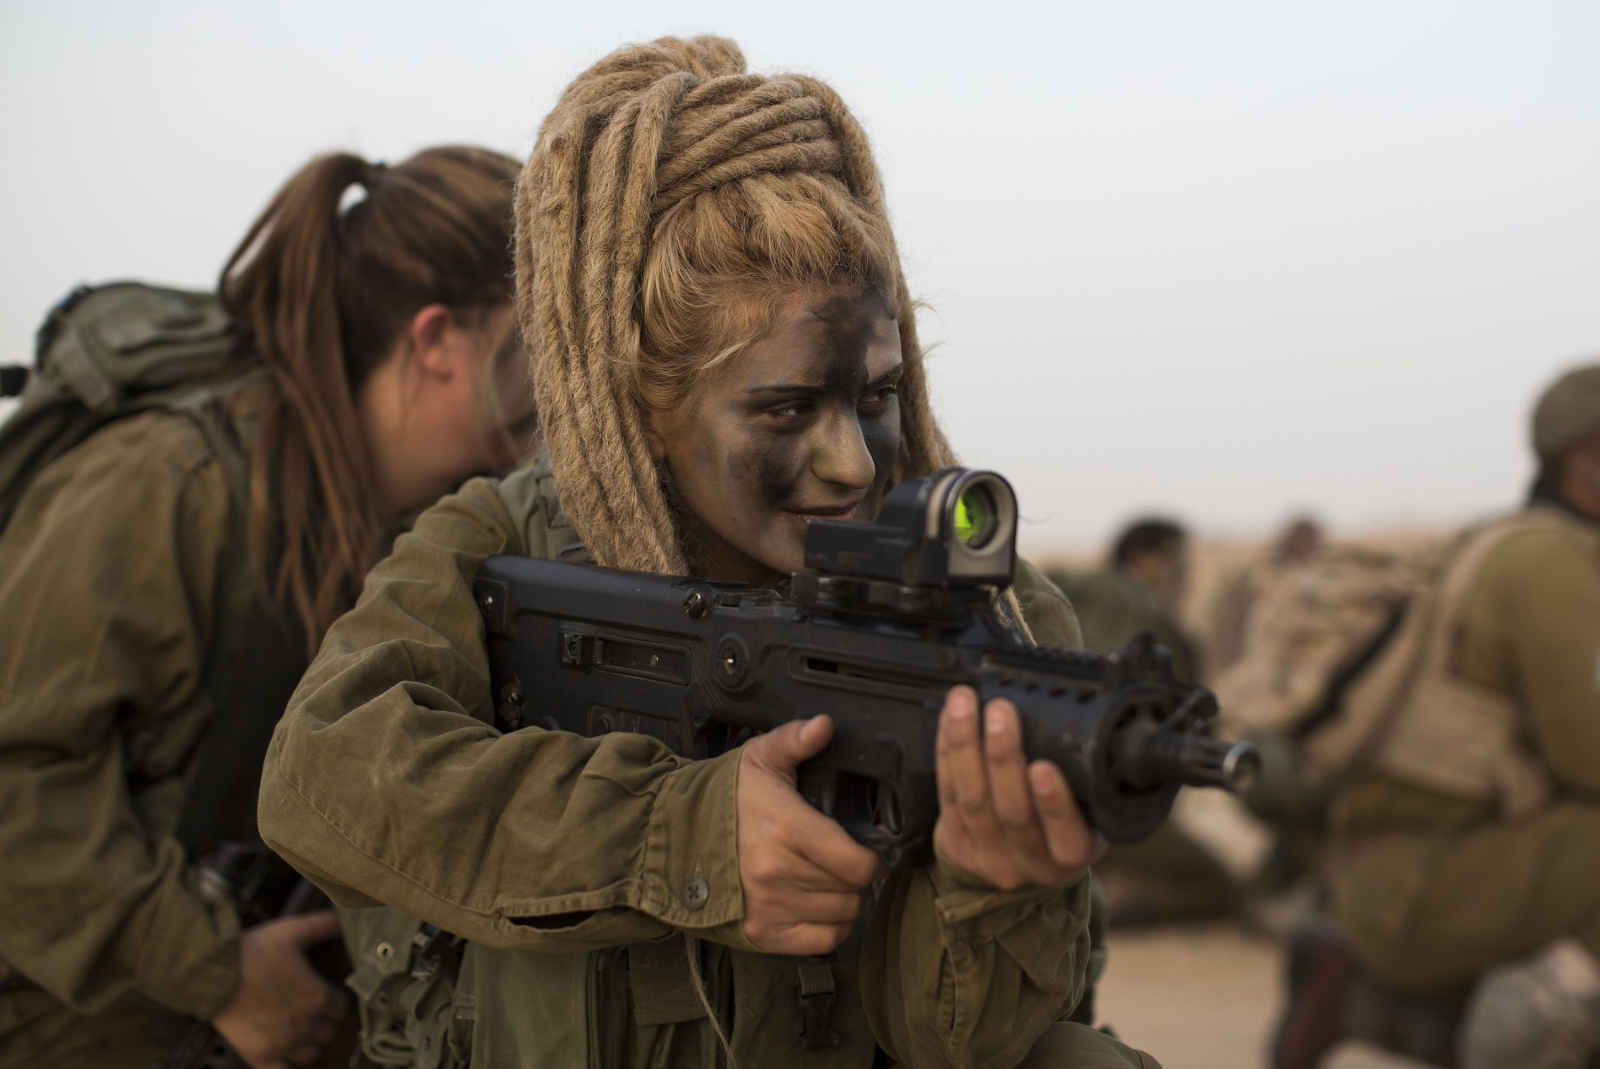 https://d.ibtimes.co.uk/en/full/1397962/israel-female-soldiers-9.jpg